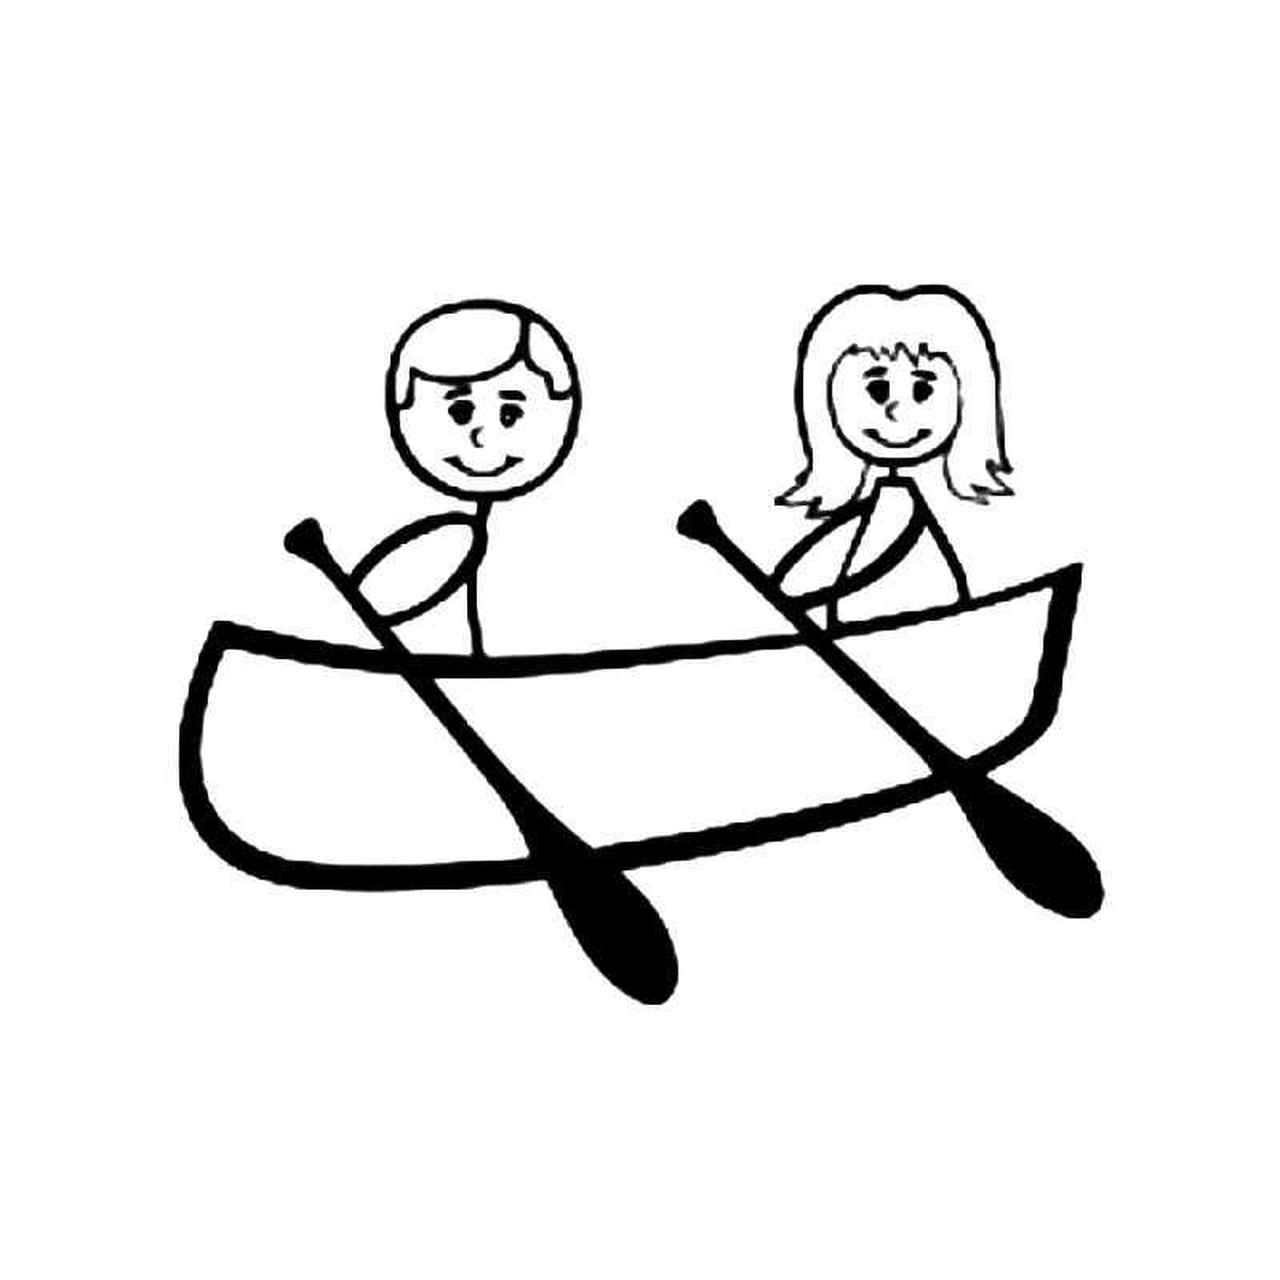 png black and white download Kayak transparent . Kayaking clipart stick figure